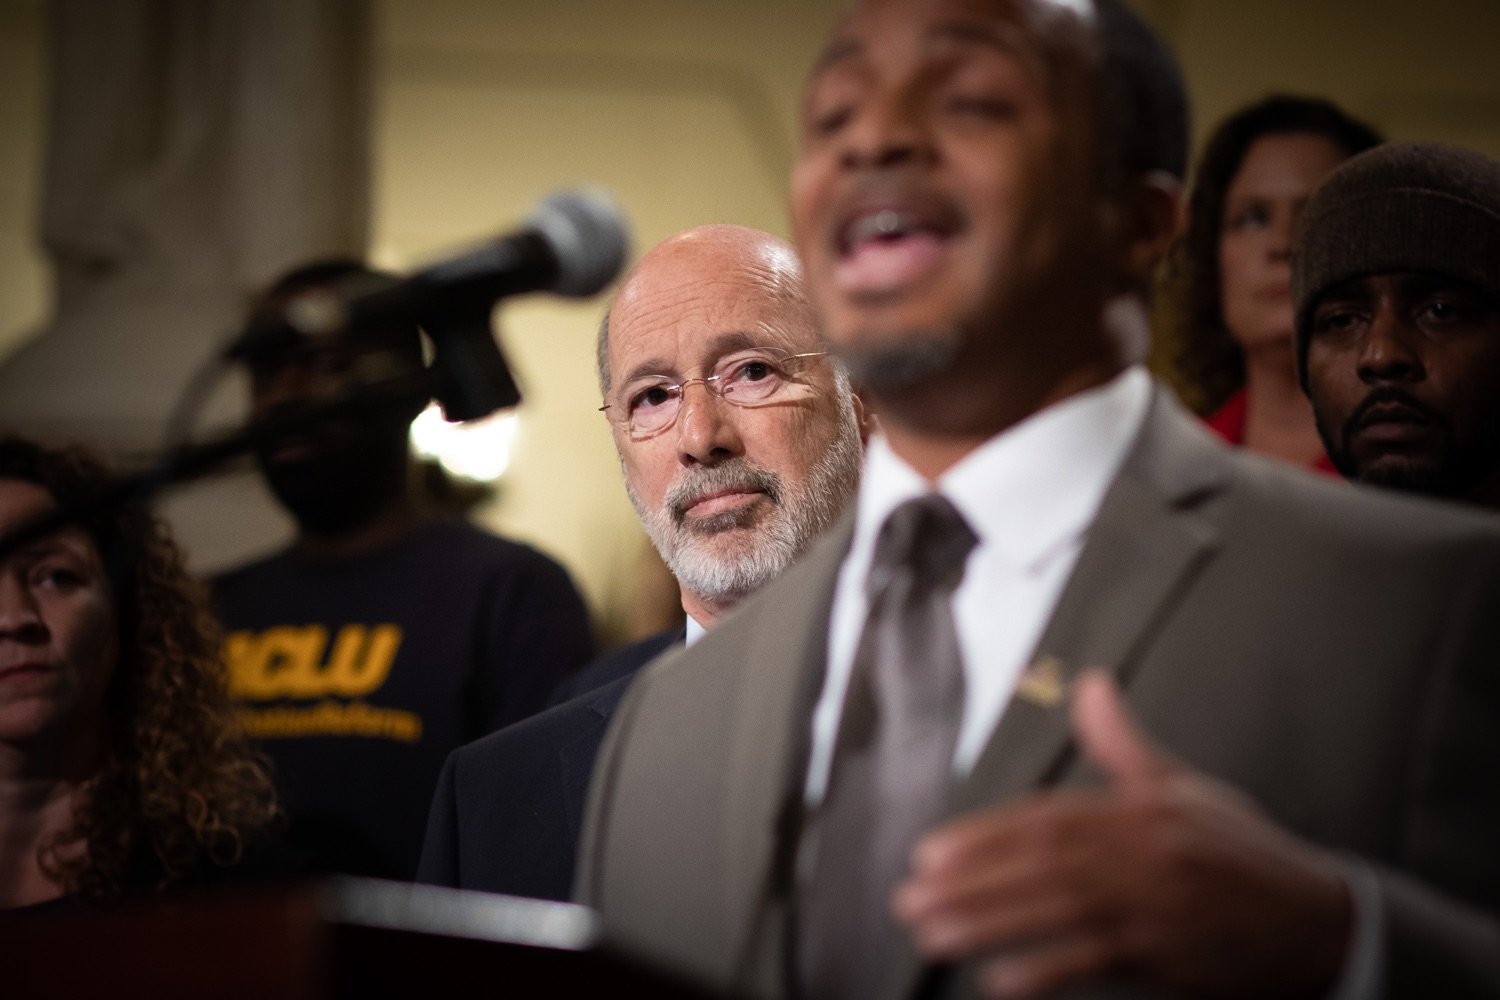 """<a href=""""http://filesource.abacast.com/commonwealthofpa/photo/17601_gov_right_on_crime_dz_018.jpg"""" target=""""_blank"""">⇣Download Photo<br></a>Governor Tom Wolf listening to Deputy Secretary of Corrections Christian Stephens speaking at the event.  at the event. Governor Tom Wolf was joined by Deputy Secretary of Corrections Christian Stephens and national criminal justice reform advocates today in the Capitol Rotunda to push for commonsense probation reforms that address probation sentences and probation lengths.  Harrisburg, PA  November 18, 2019"""